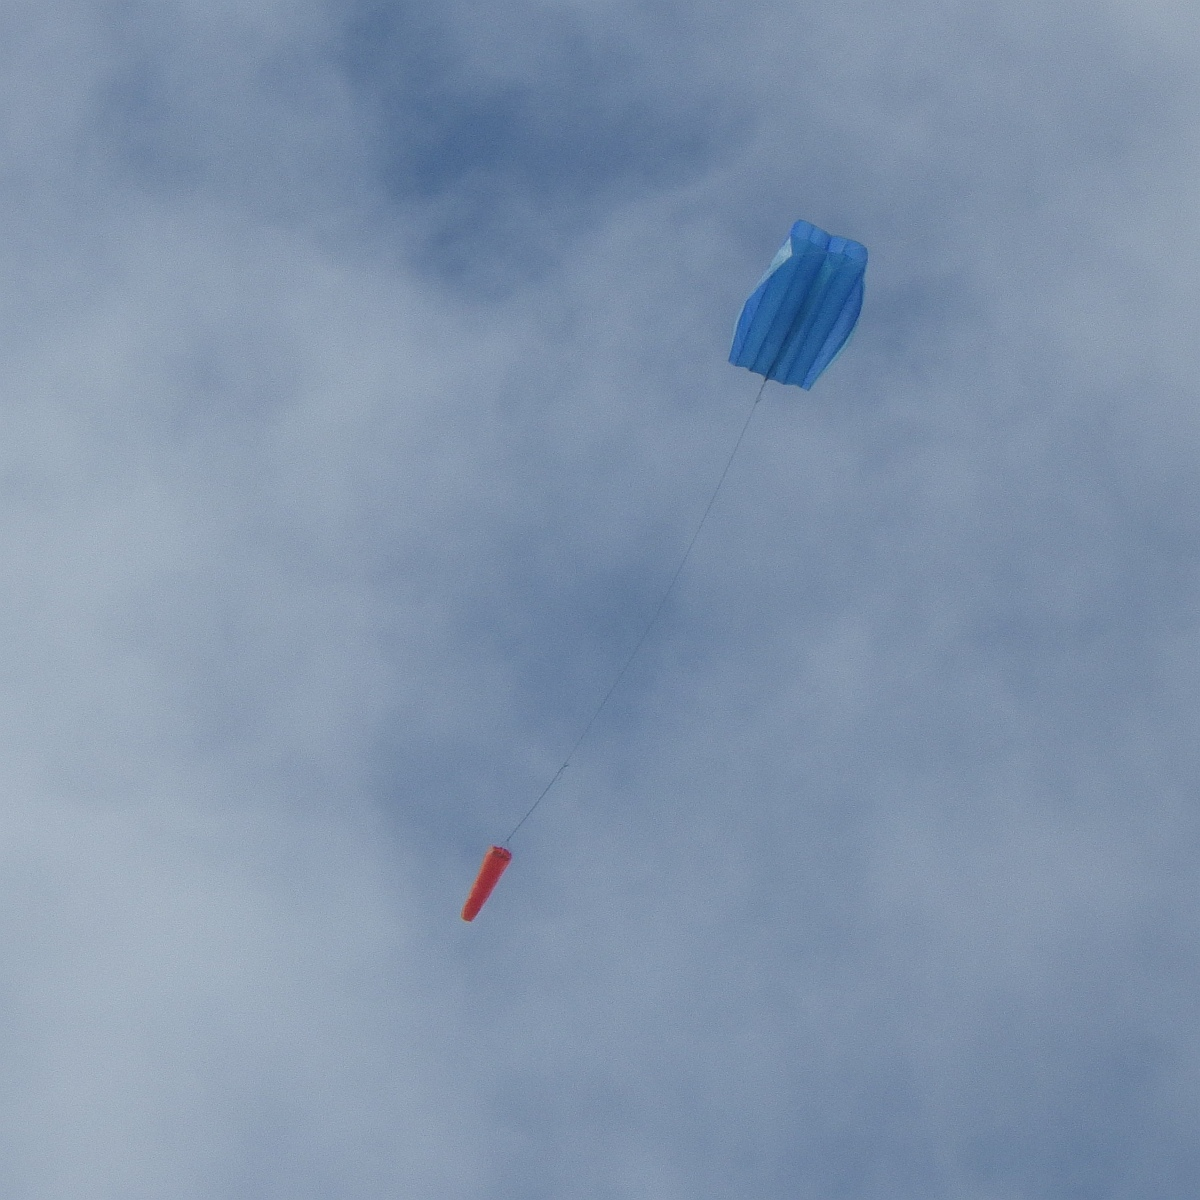 flight report parafoil kite in gusty moderate air